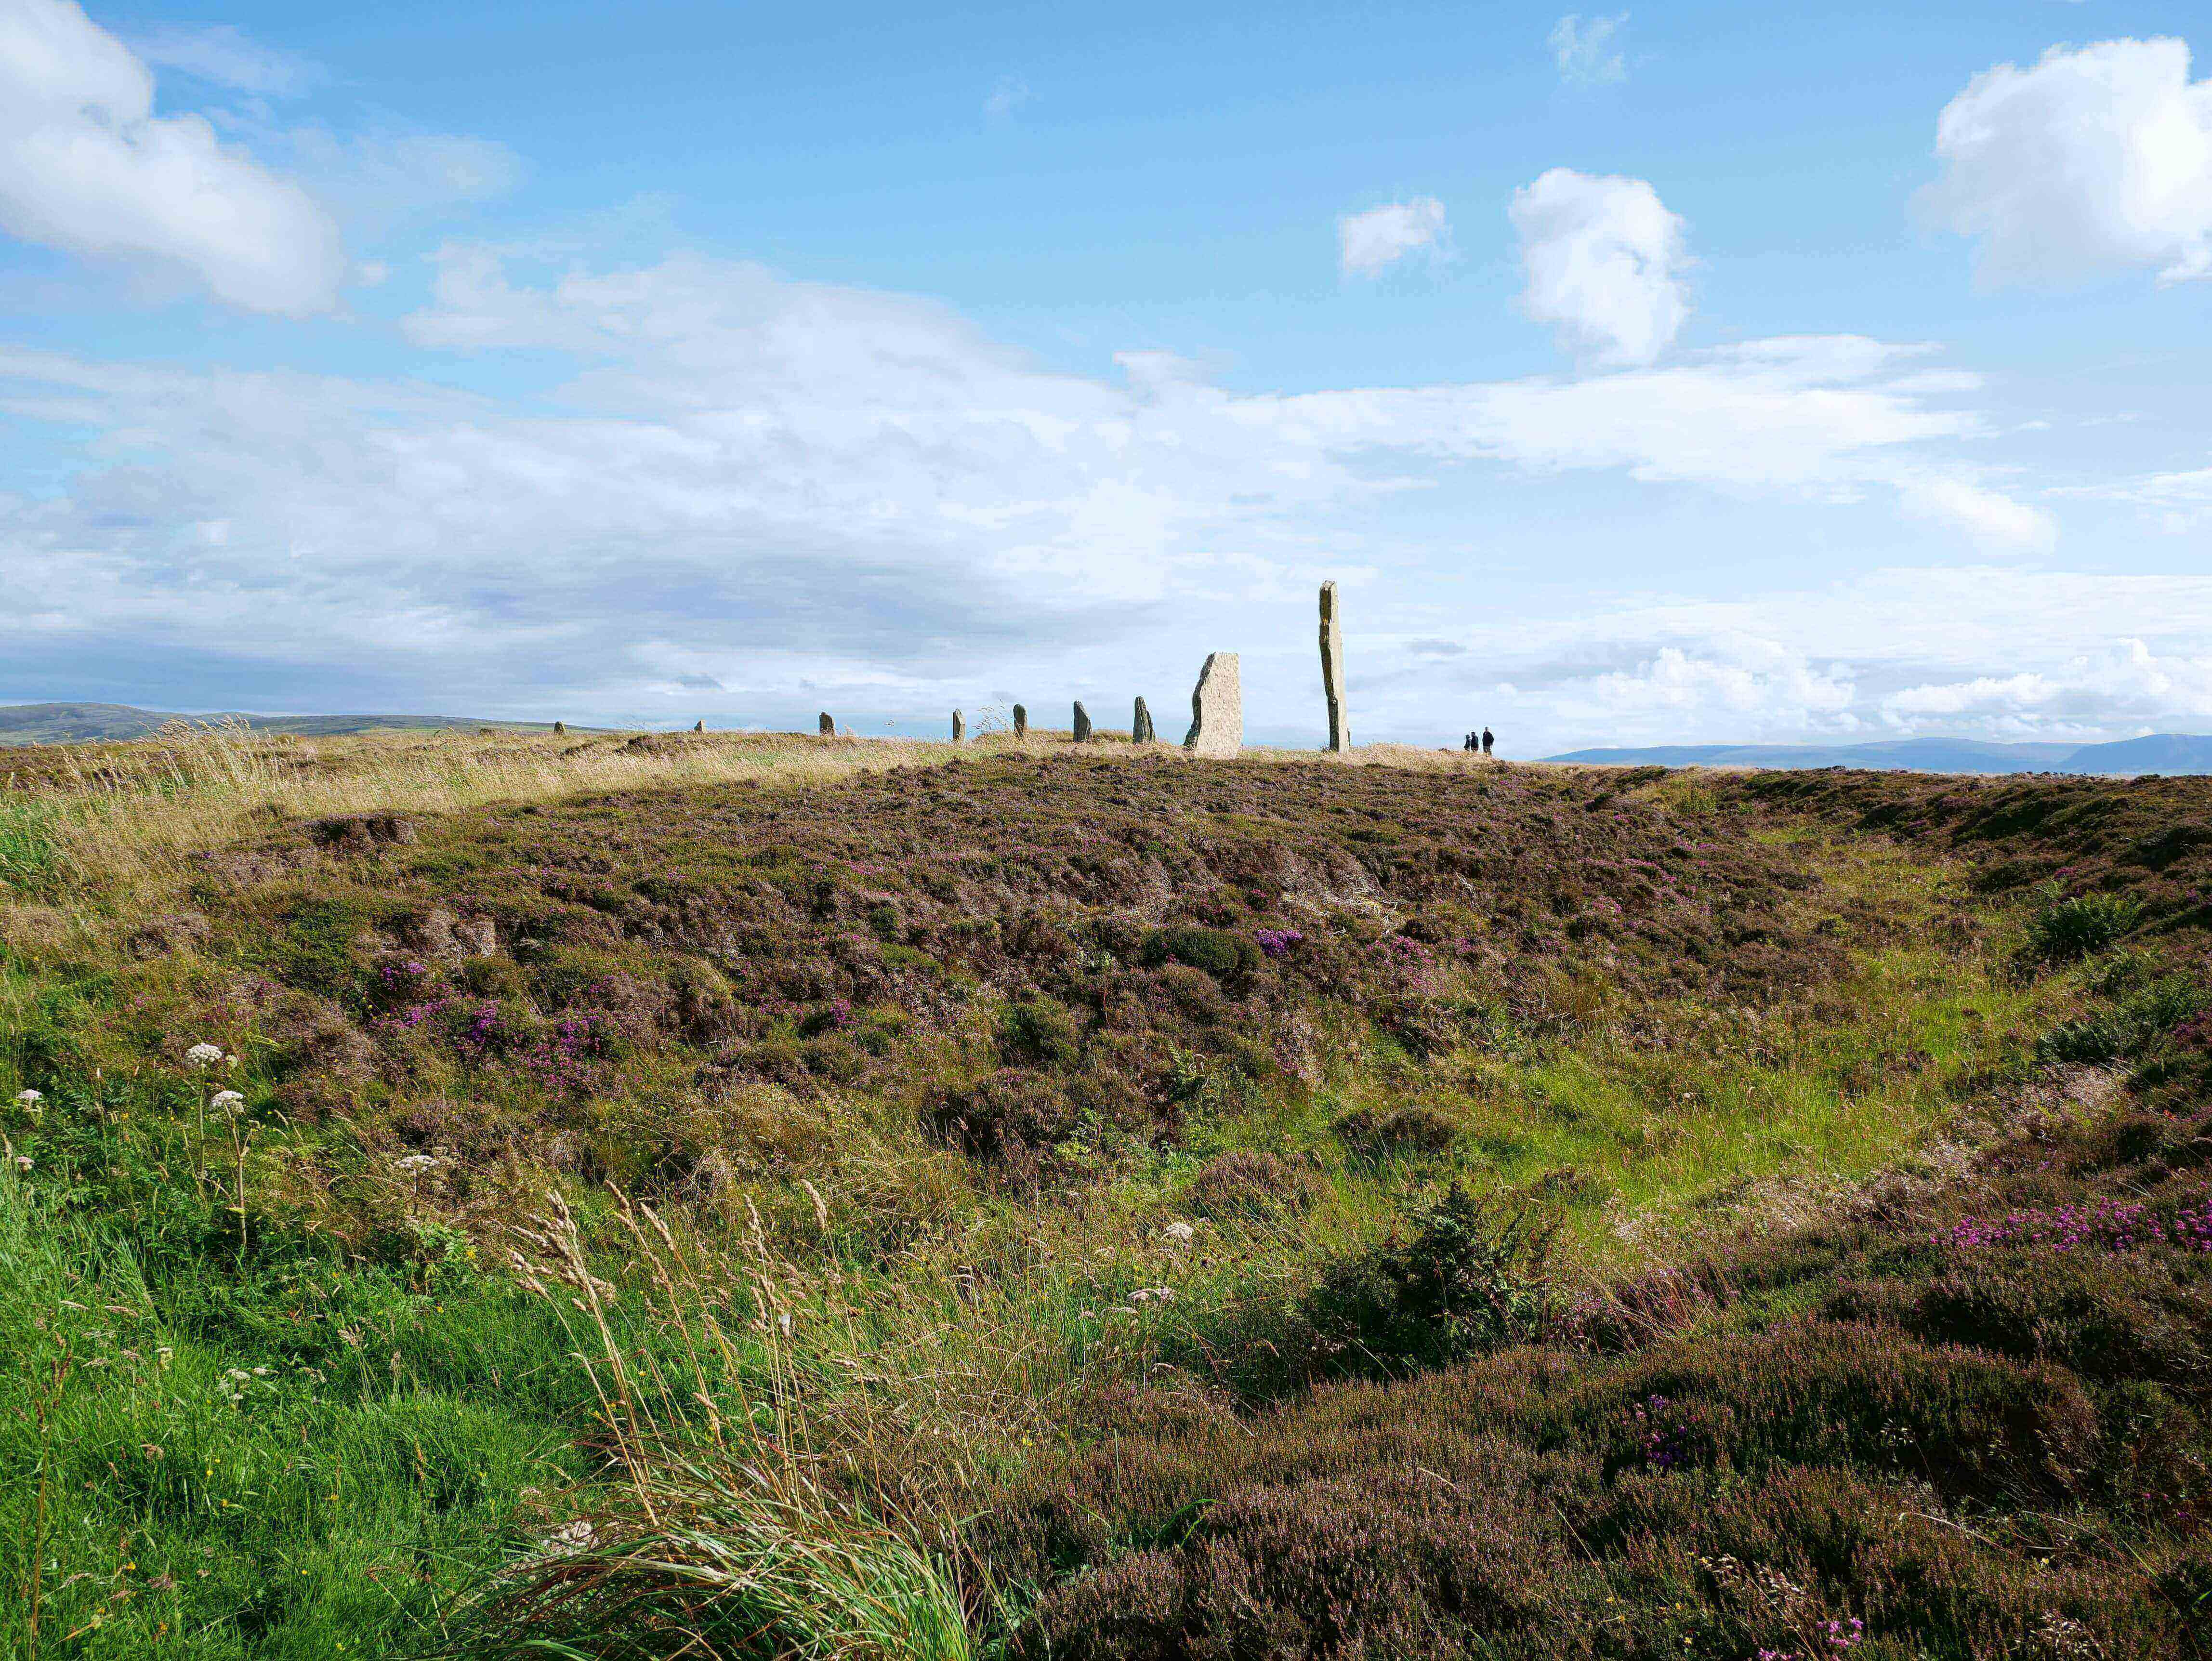 The ditch surrounding the Neolithic stone circle at Broadgar, Orkney Islands, Scotland, UK. www.orkneyology.com